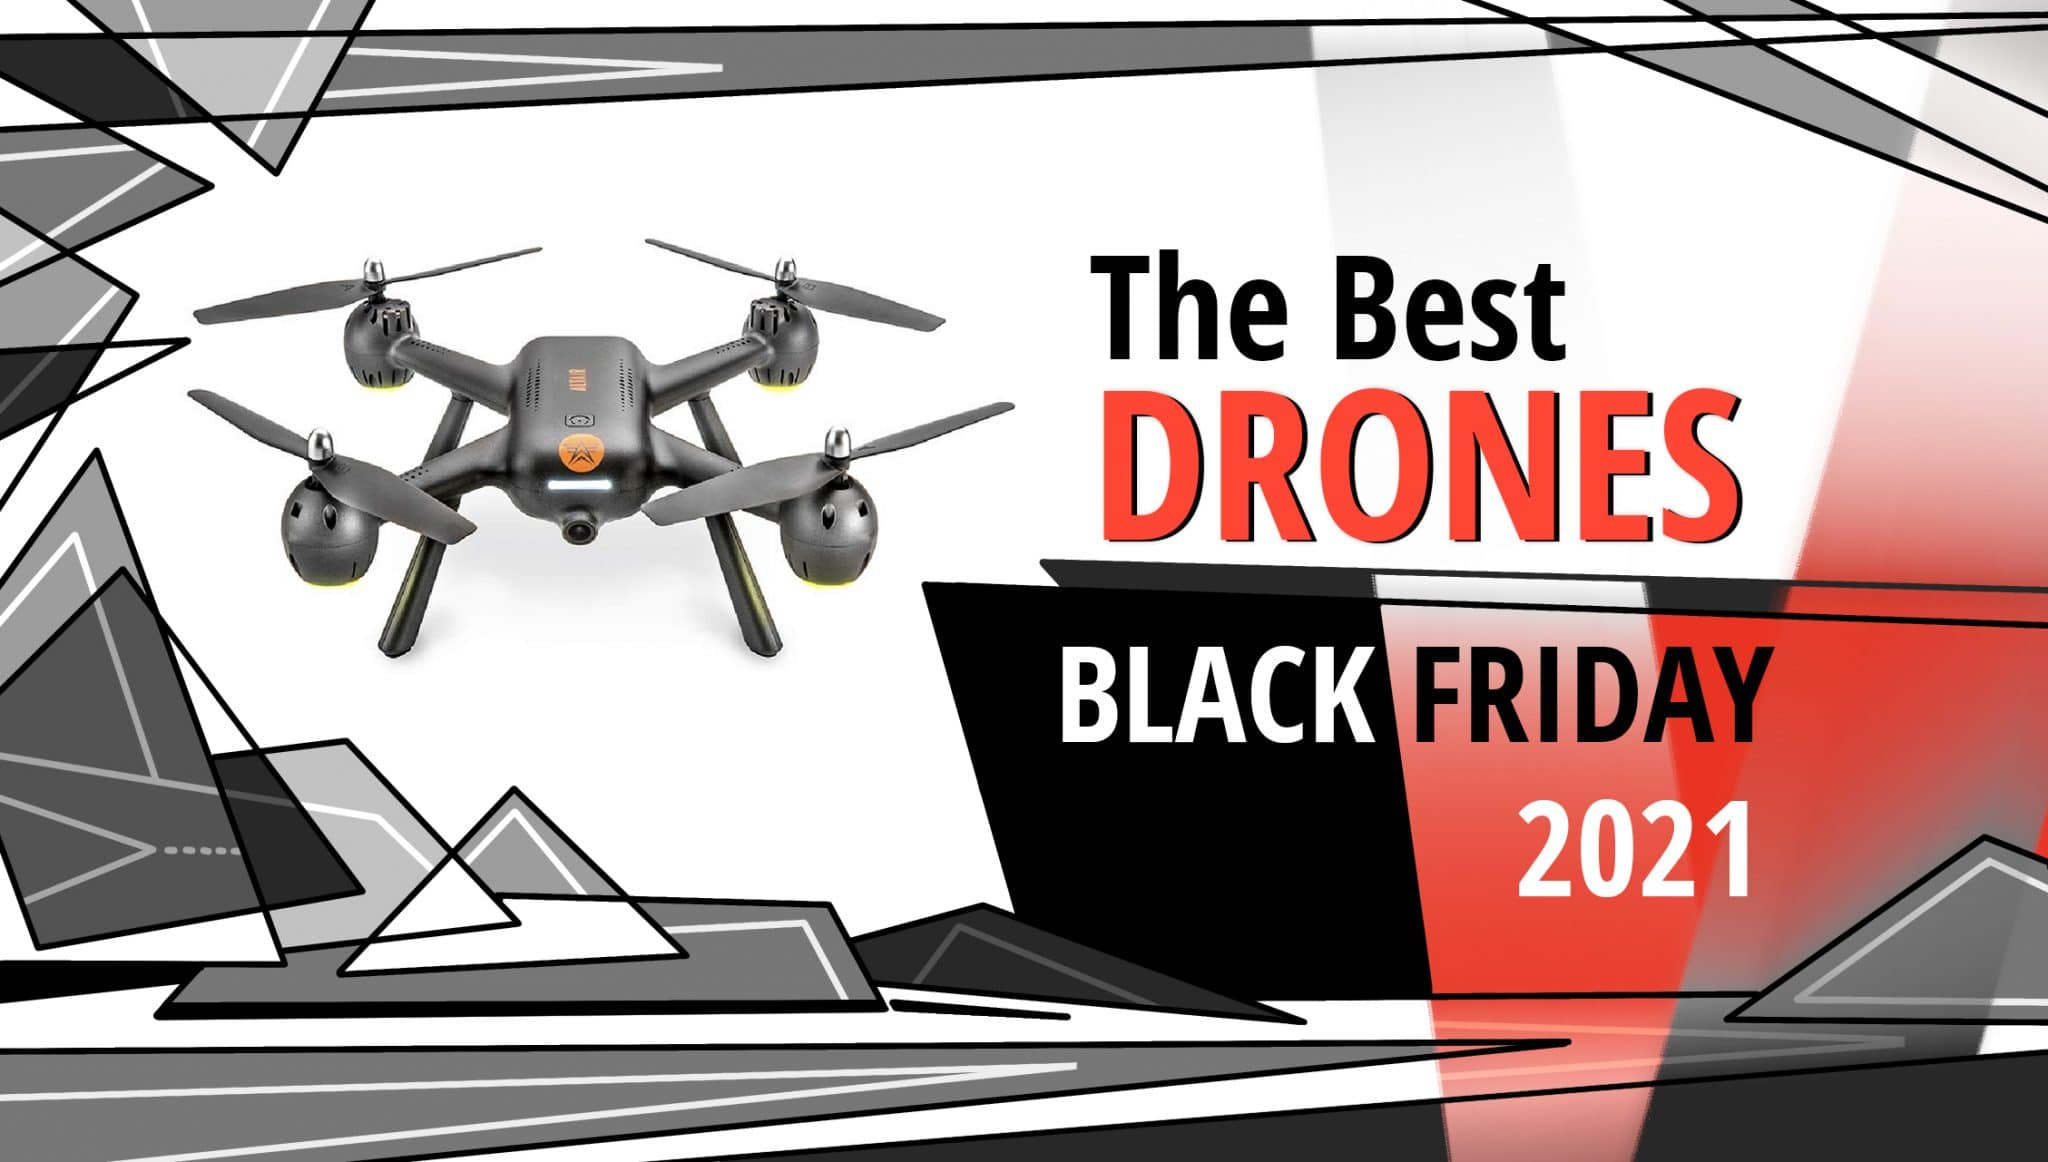 drones for black friday 2021